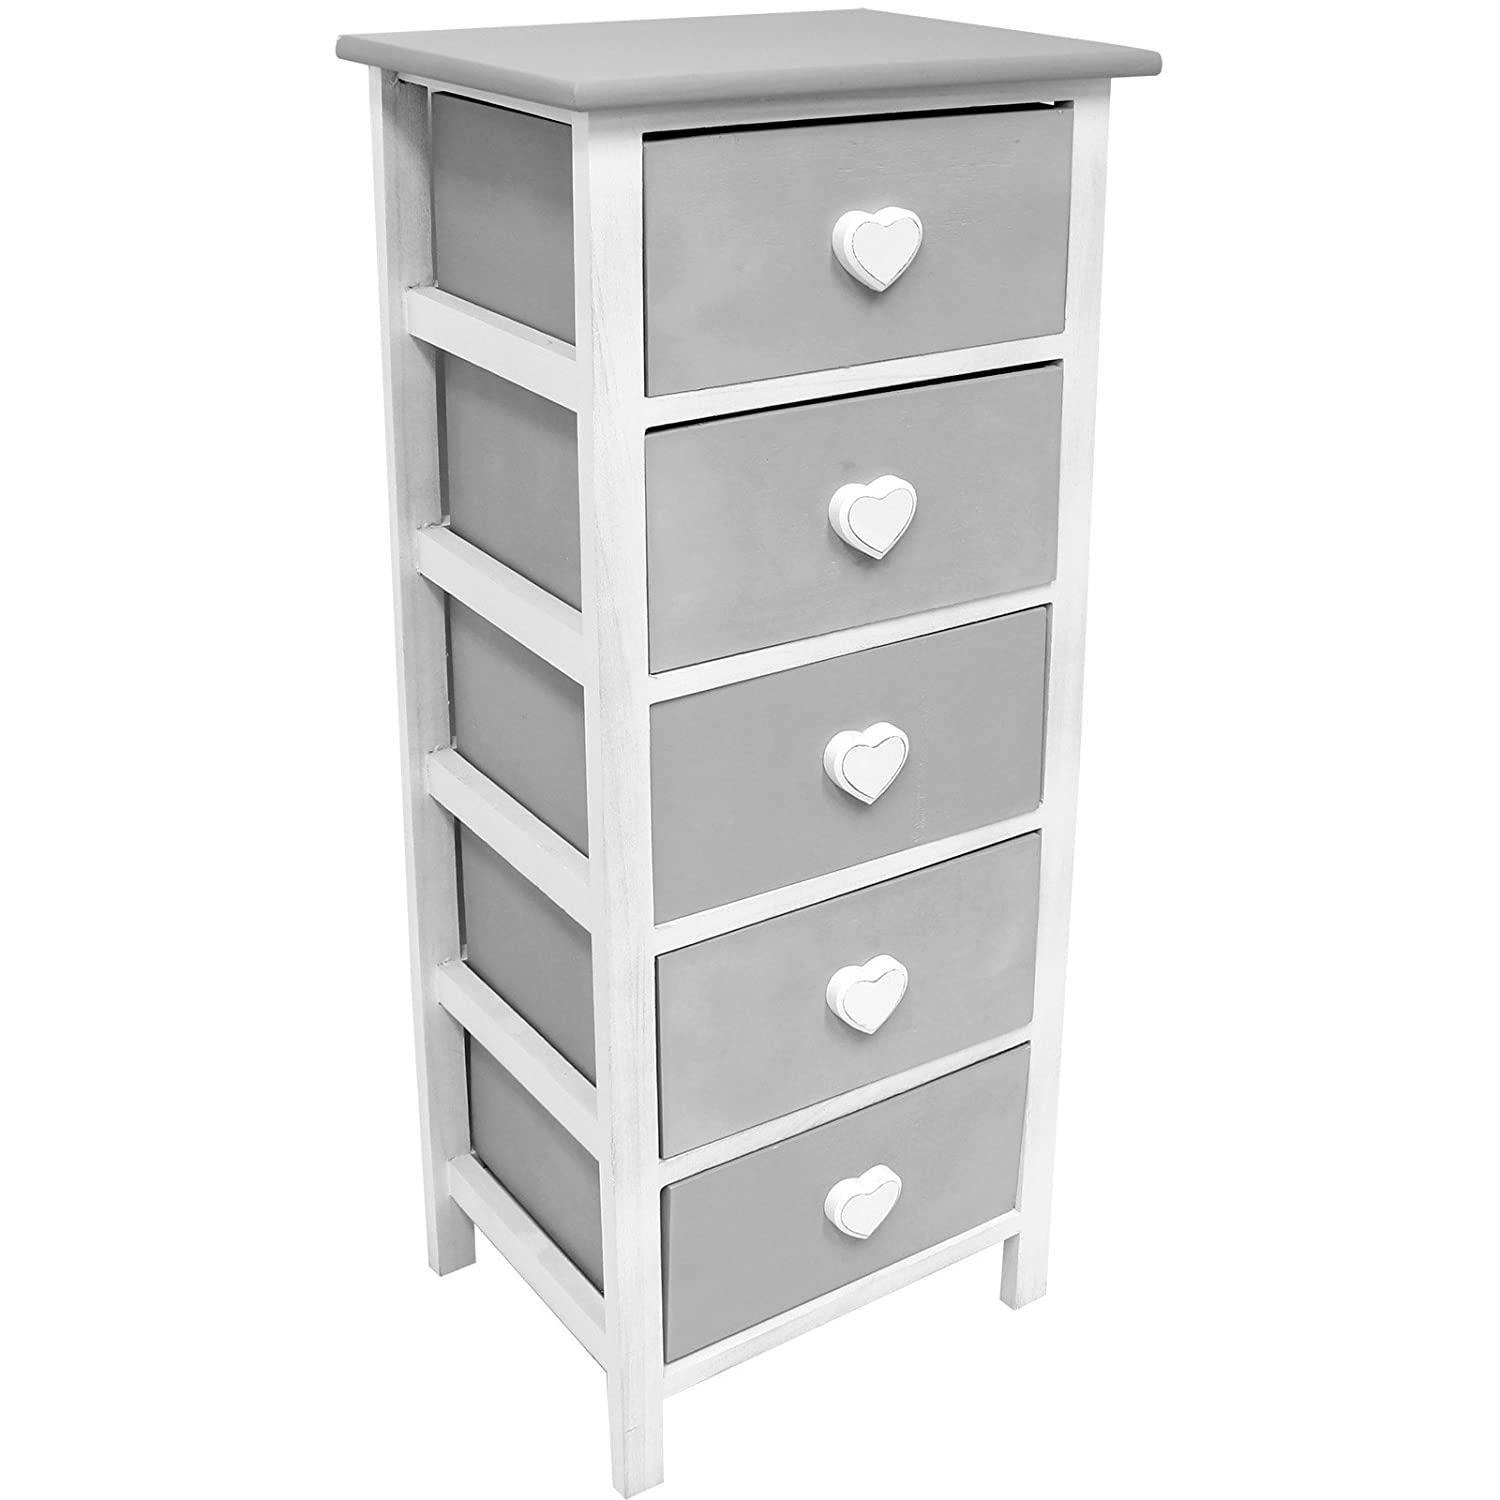 Hartleys White & Grey 5 Drawer Cabinet Amazon Kitchen & Home